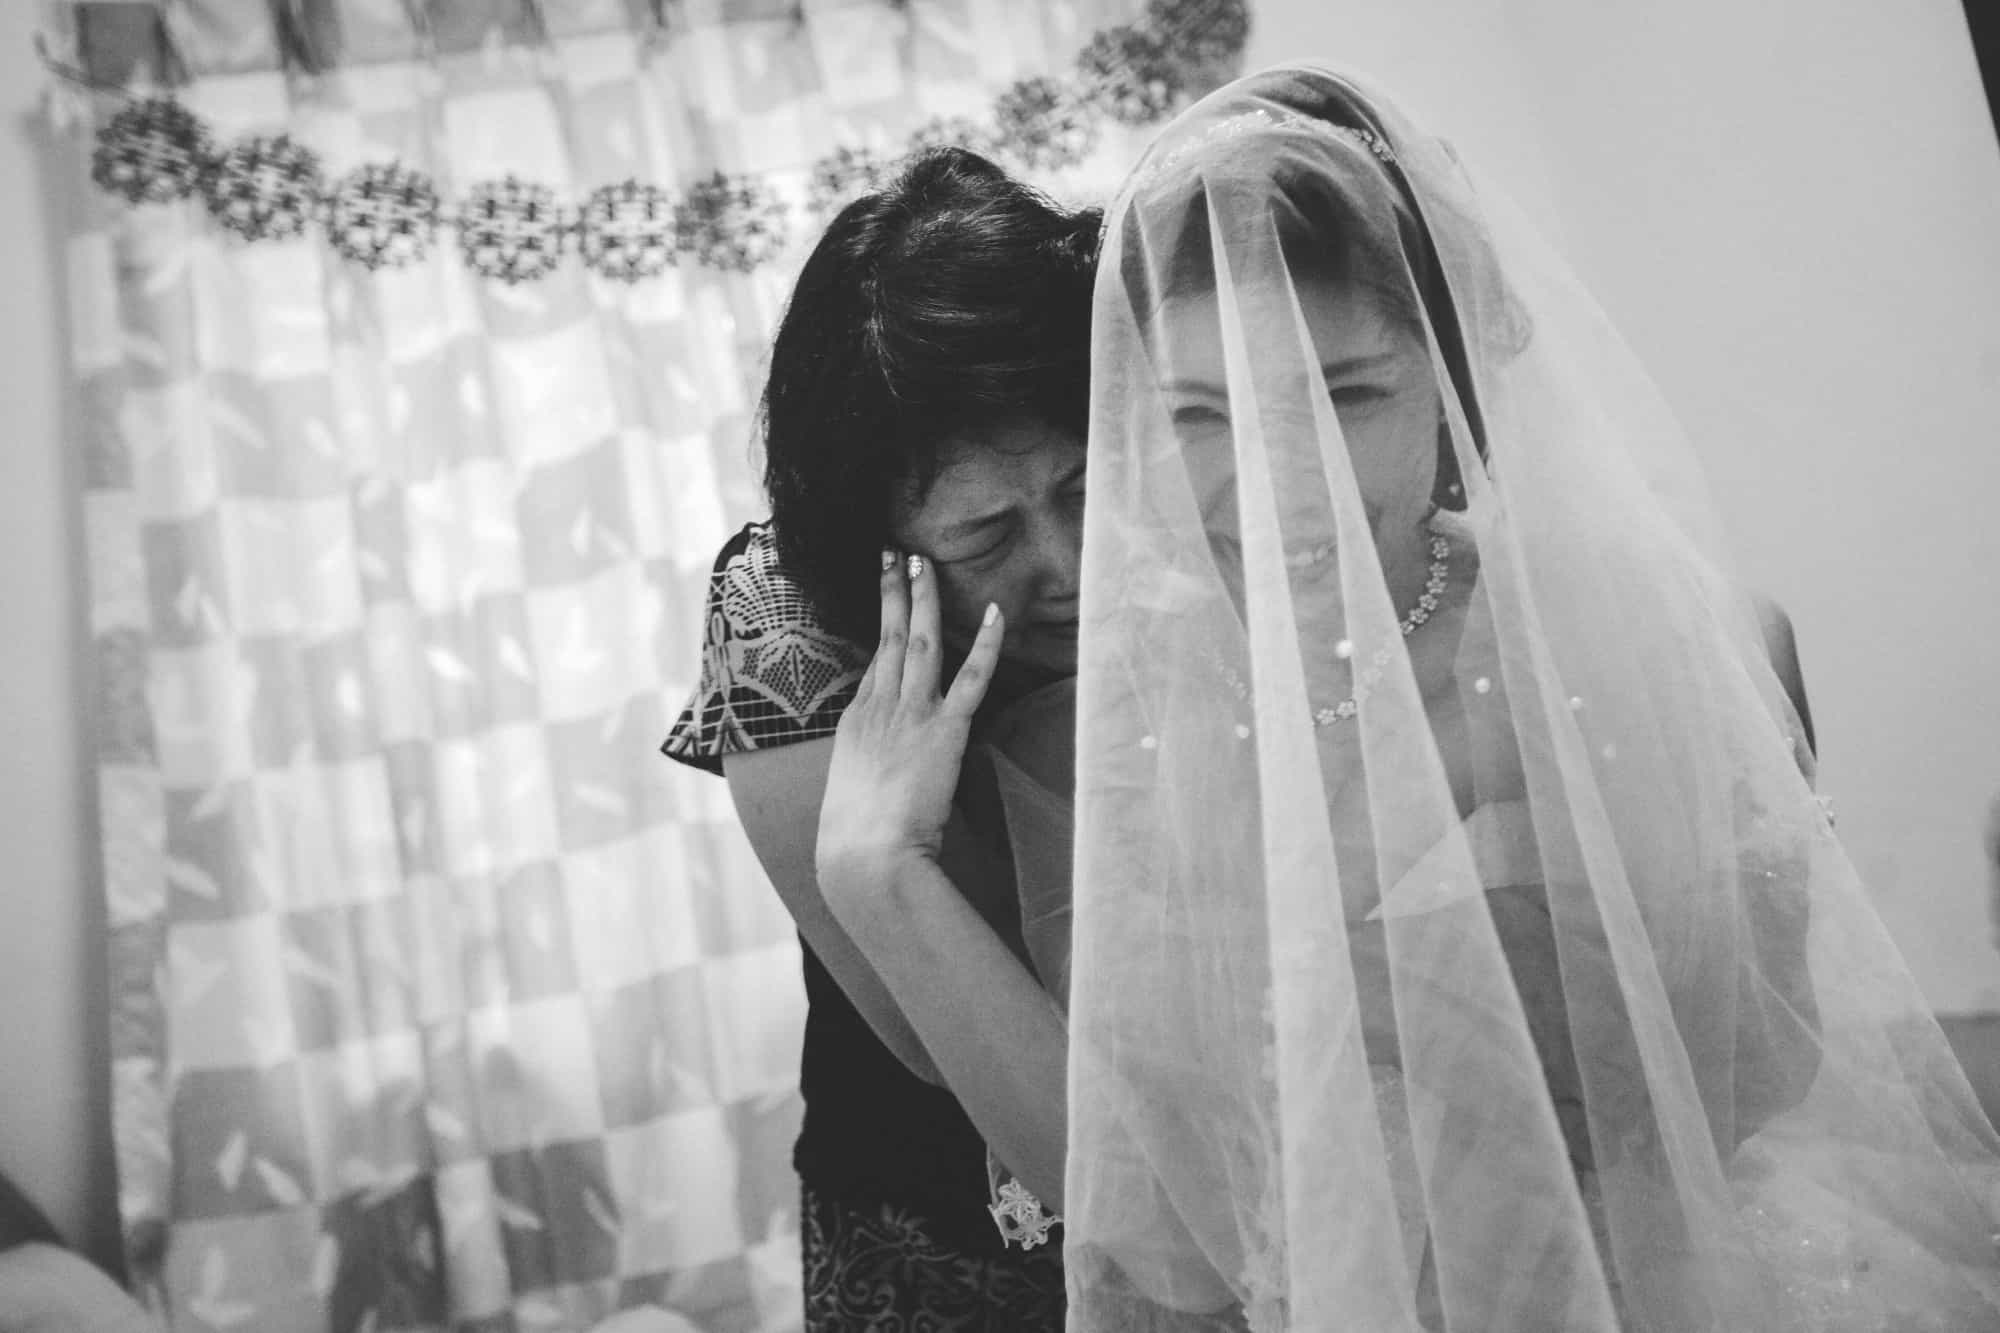 Johor malaysia wedding photograph kuala lumpur cliff choong photography gate crashing game groom groomsmen bridesmaids getting ready make up veil mother crying joy